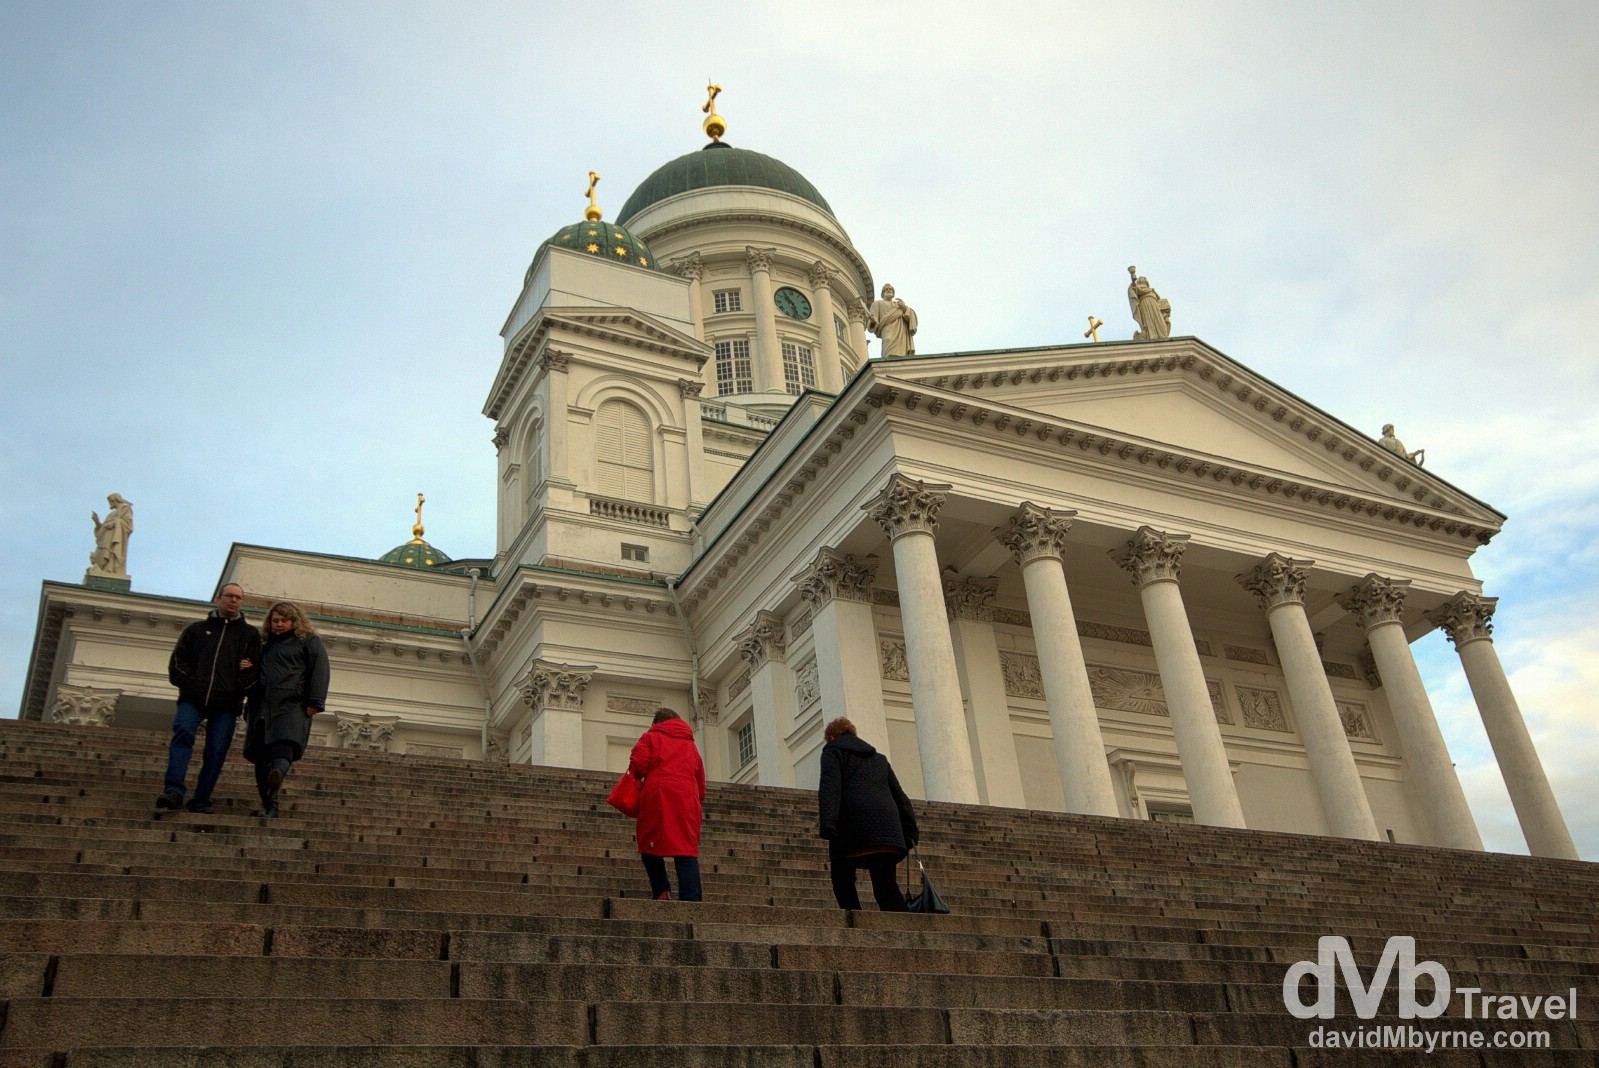 People on the steps to Helsinki Cathedral in (Senaatintori) Senate Square, Helsinki, Finland. November 24th 2012.